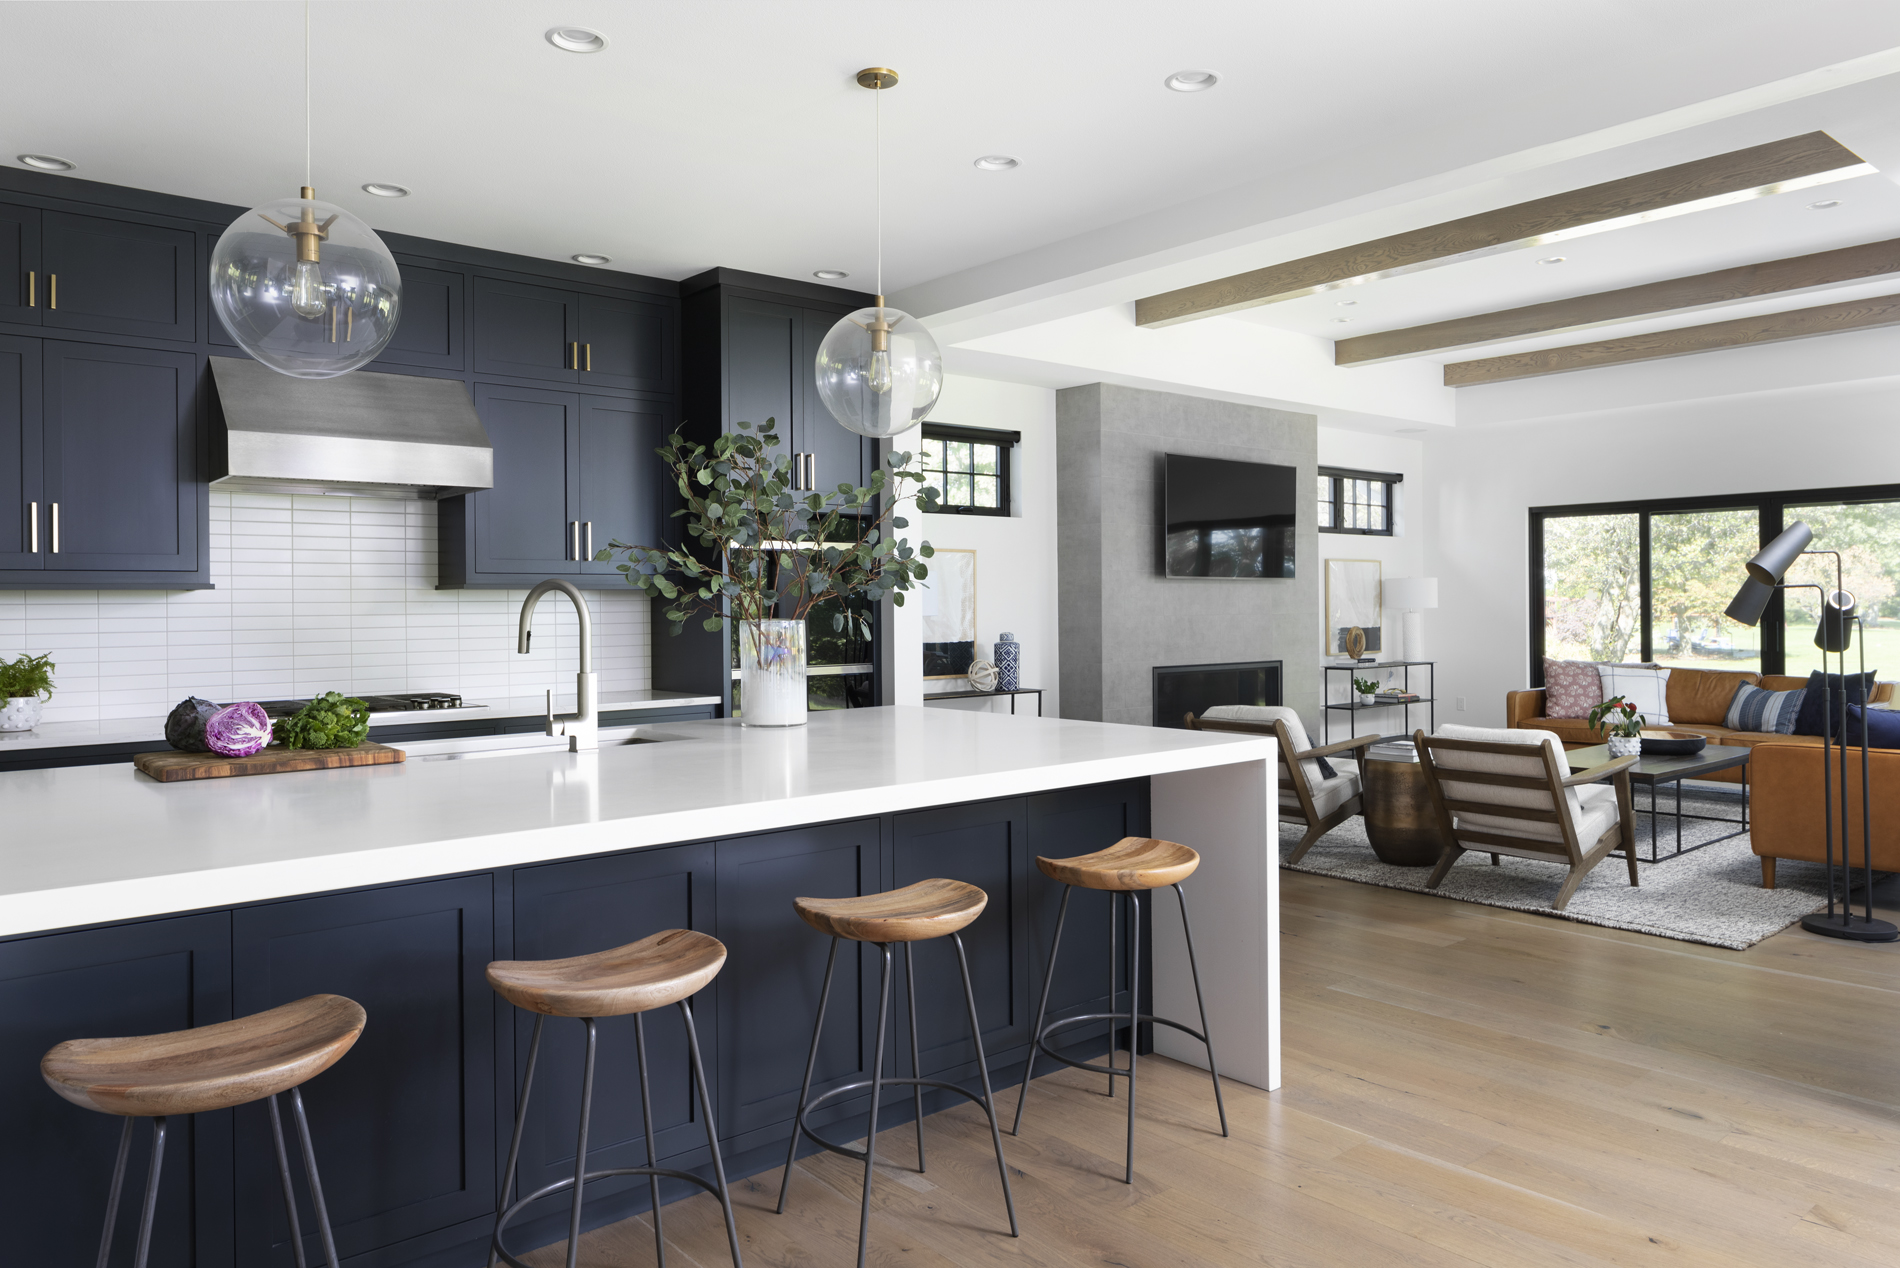 open-concept-kitchen-dark-cabinets-lakefront-home-glass-pendant-lights-brushed-gold